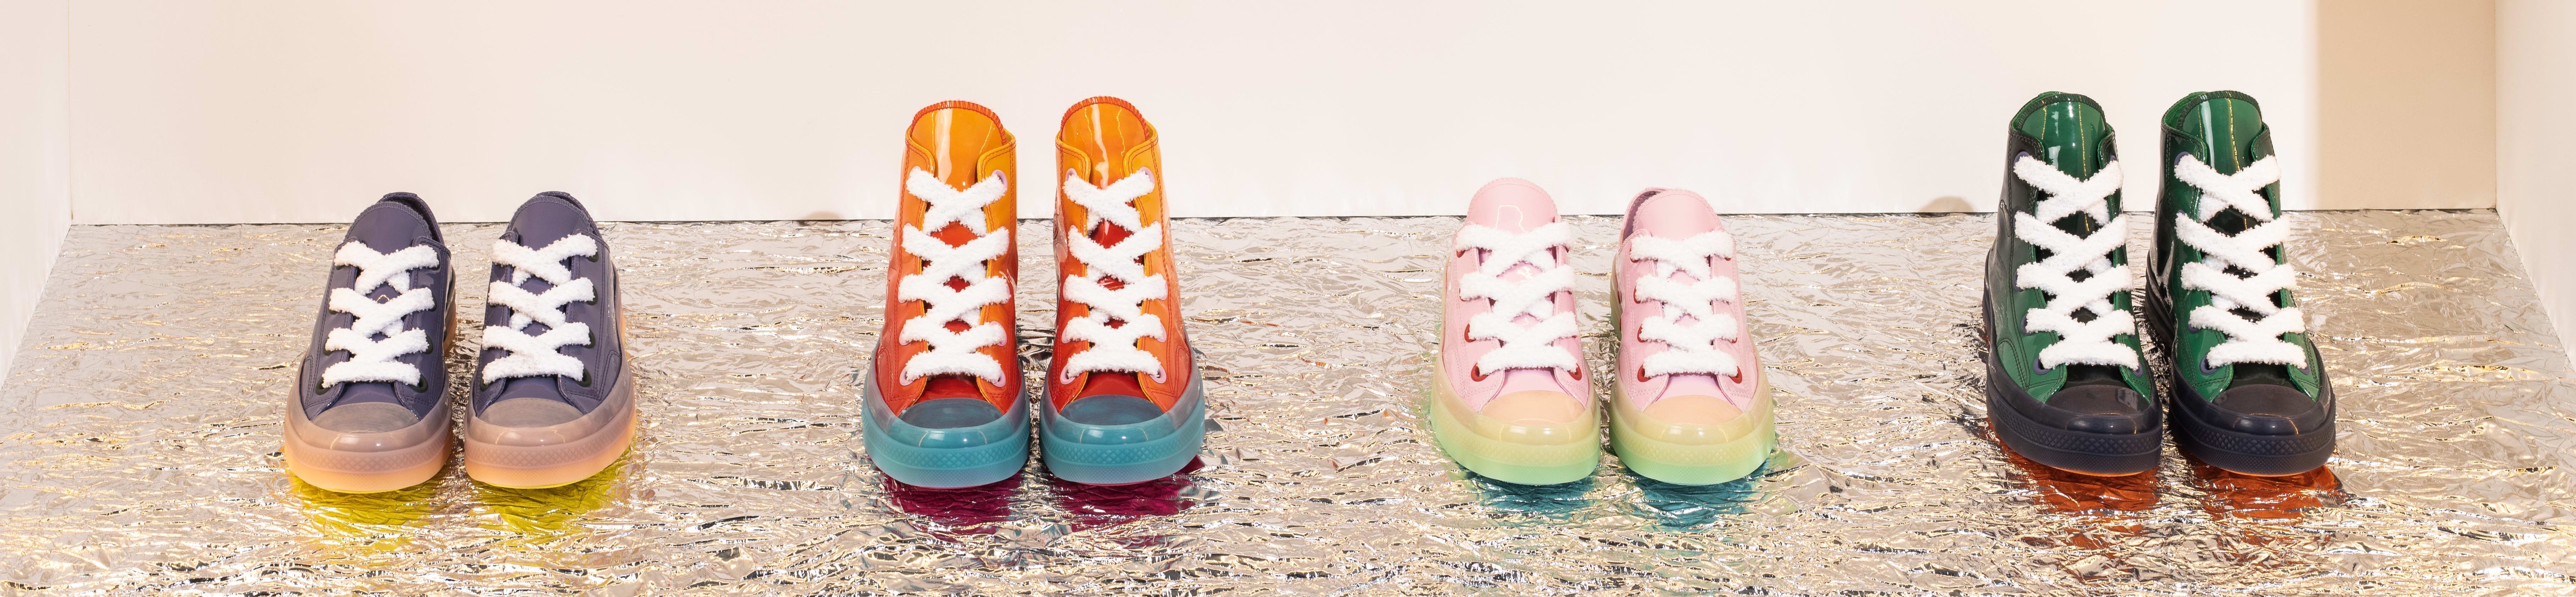 JW Anderson x Converse Chuck 70 'Toy' Collection 1